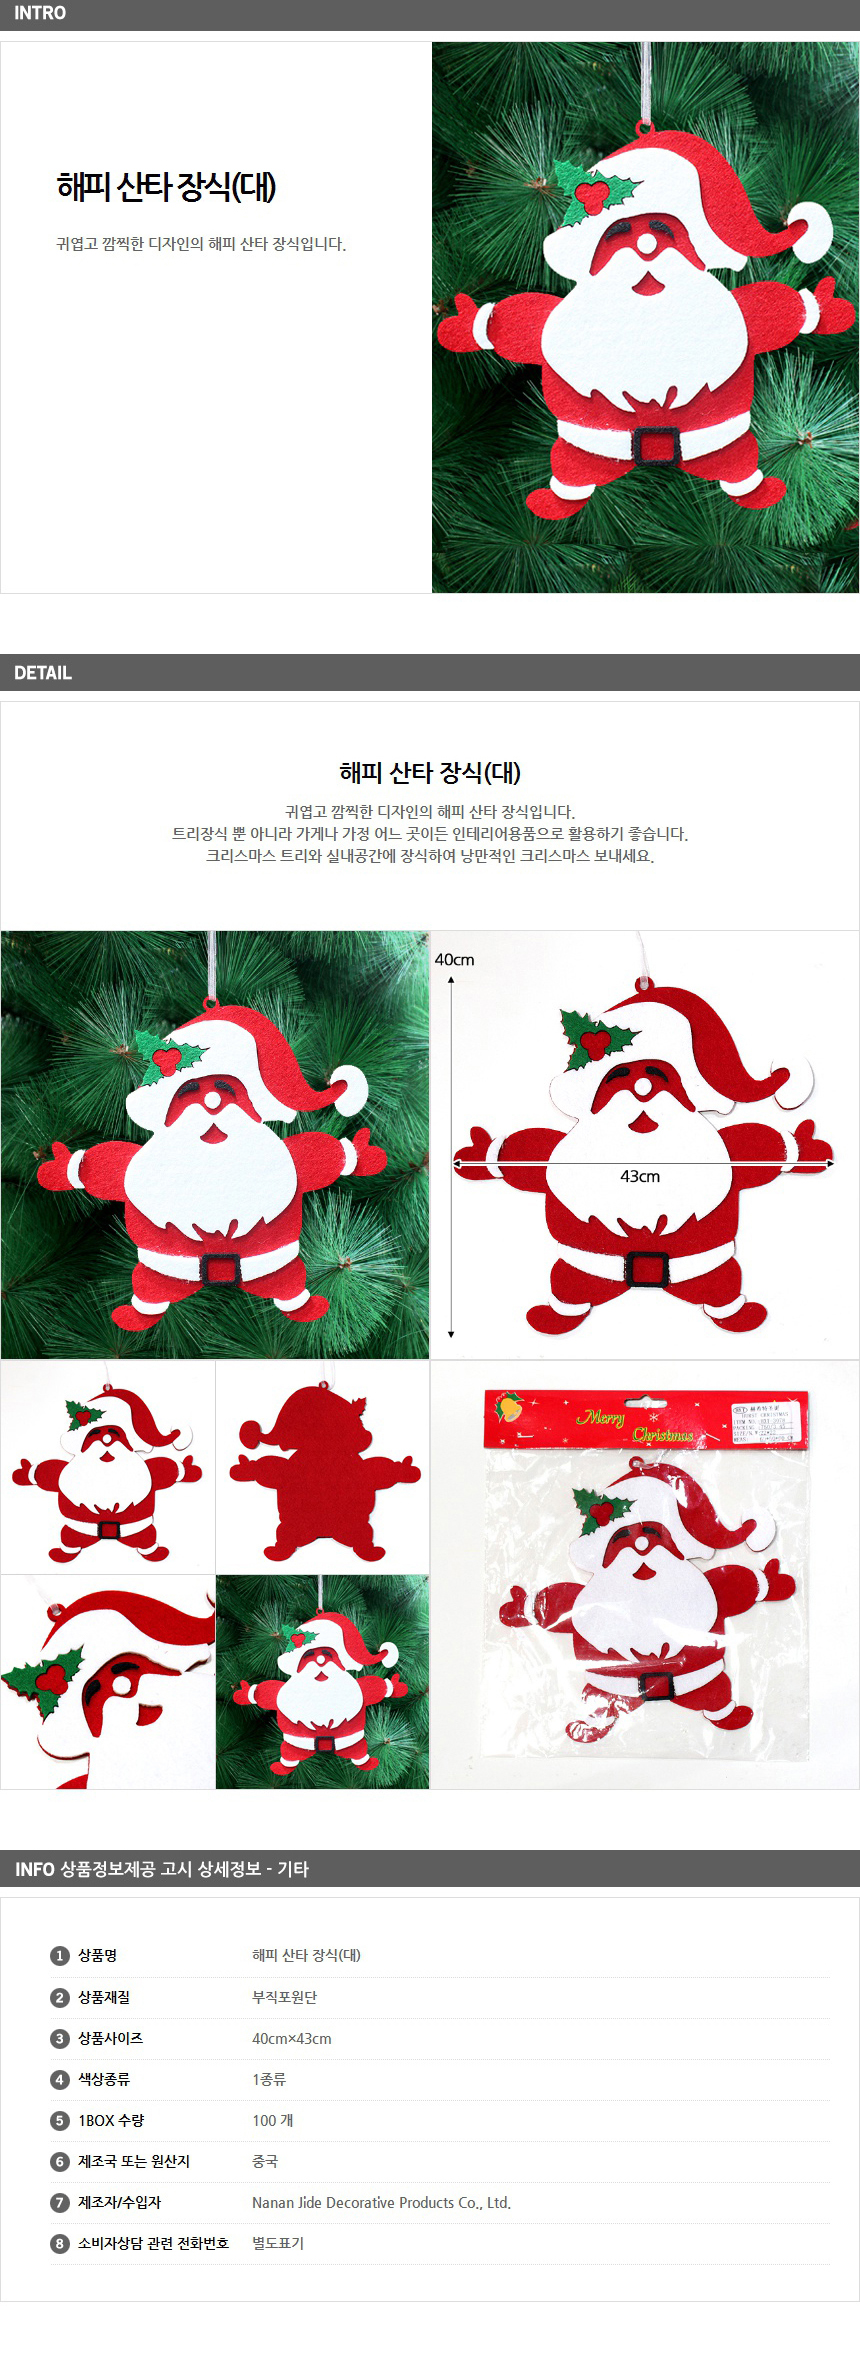 [ WINEQOK ] Christmas Goods / Happy Santa decorations ×